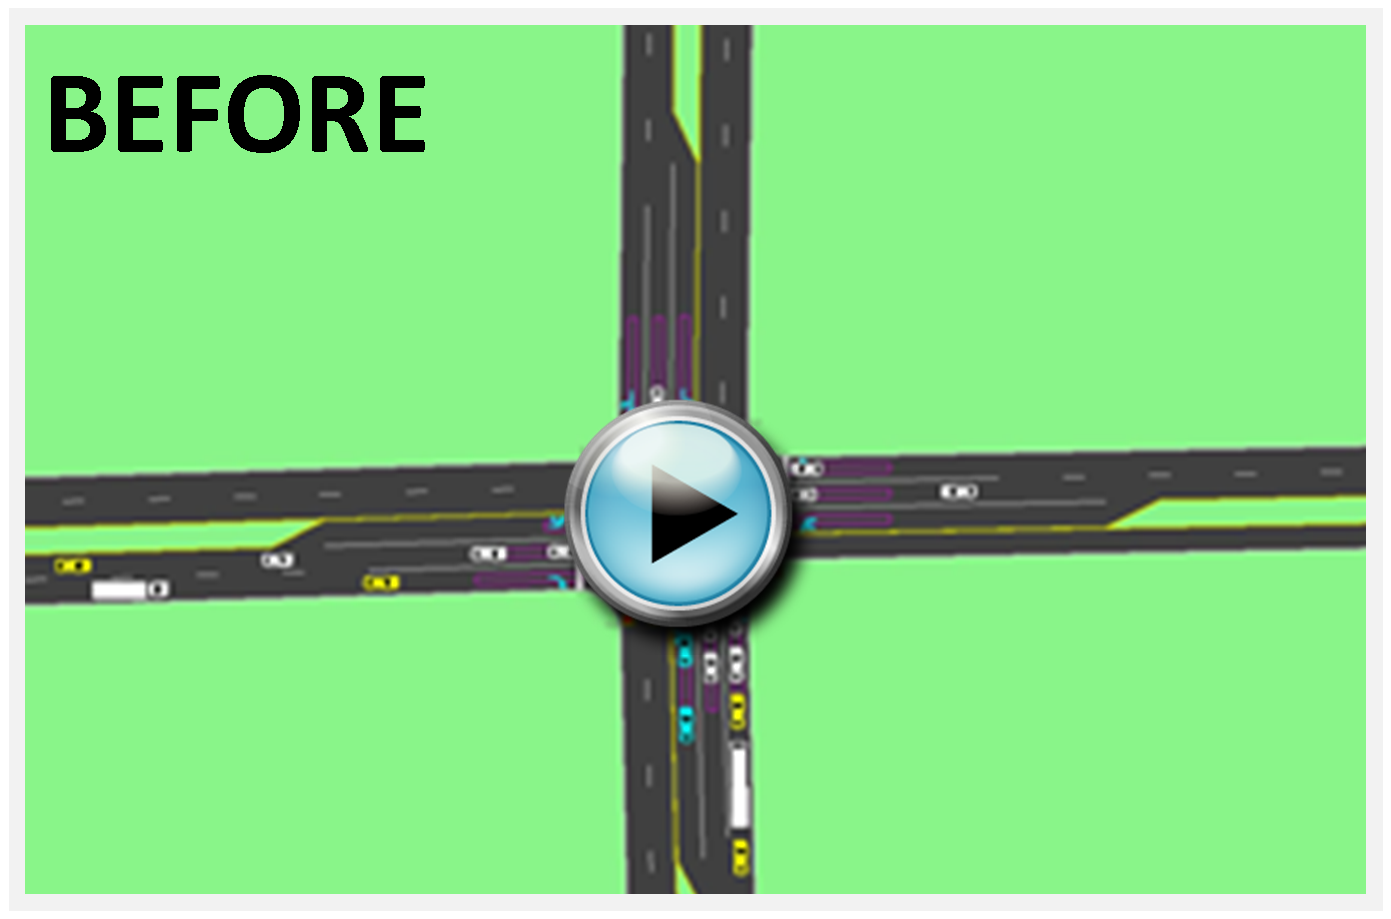 Right turn lane BEFORE animation